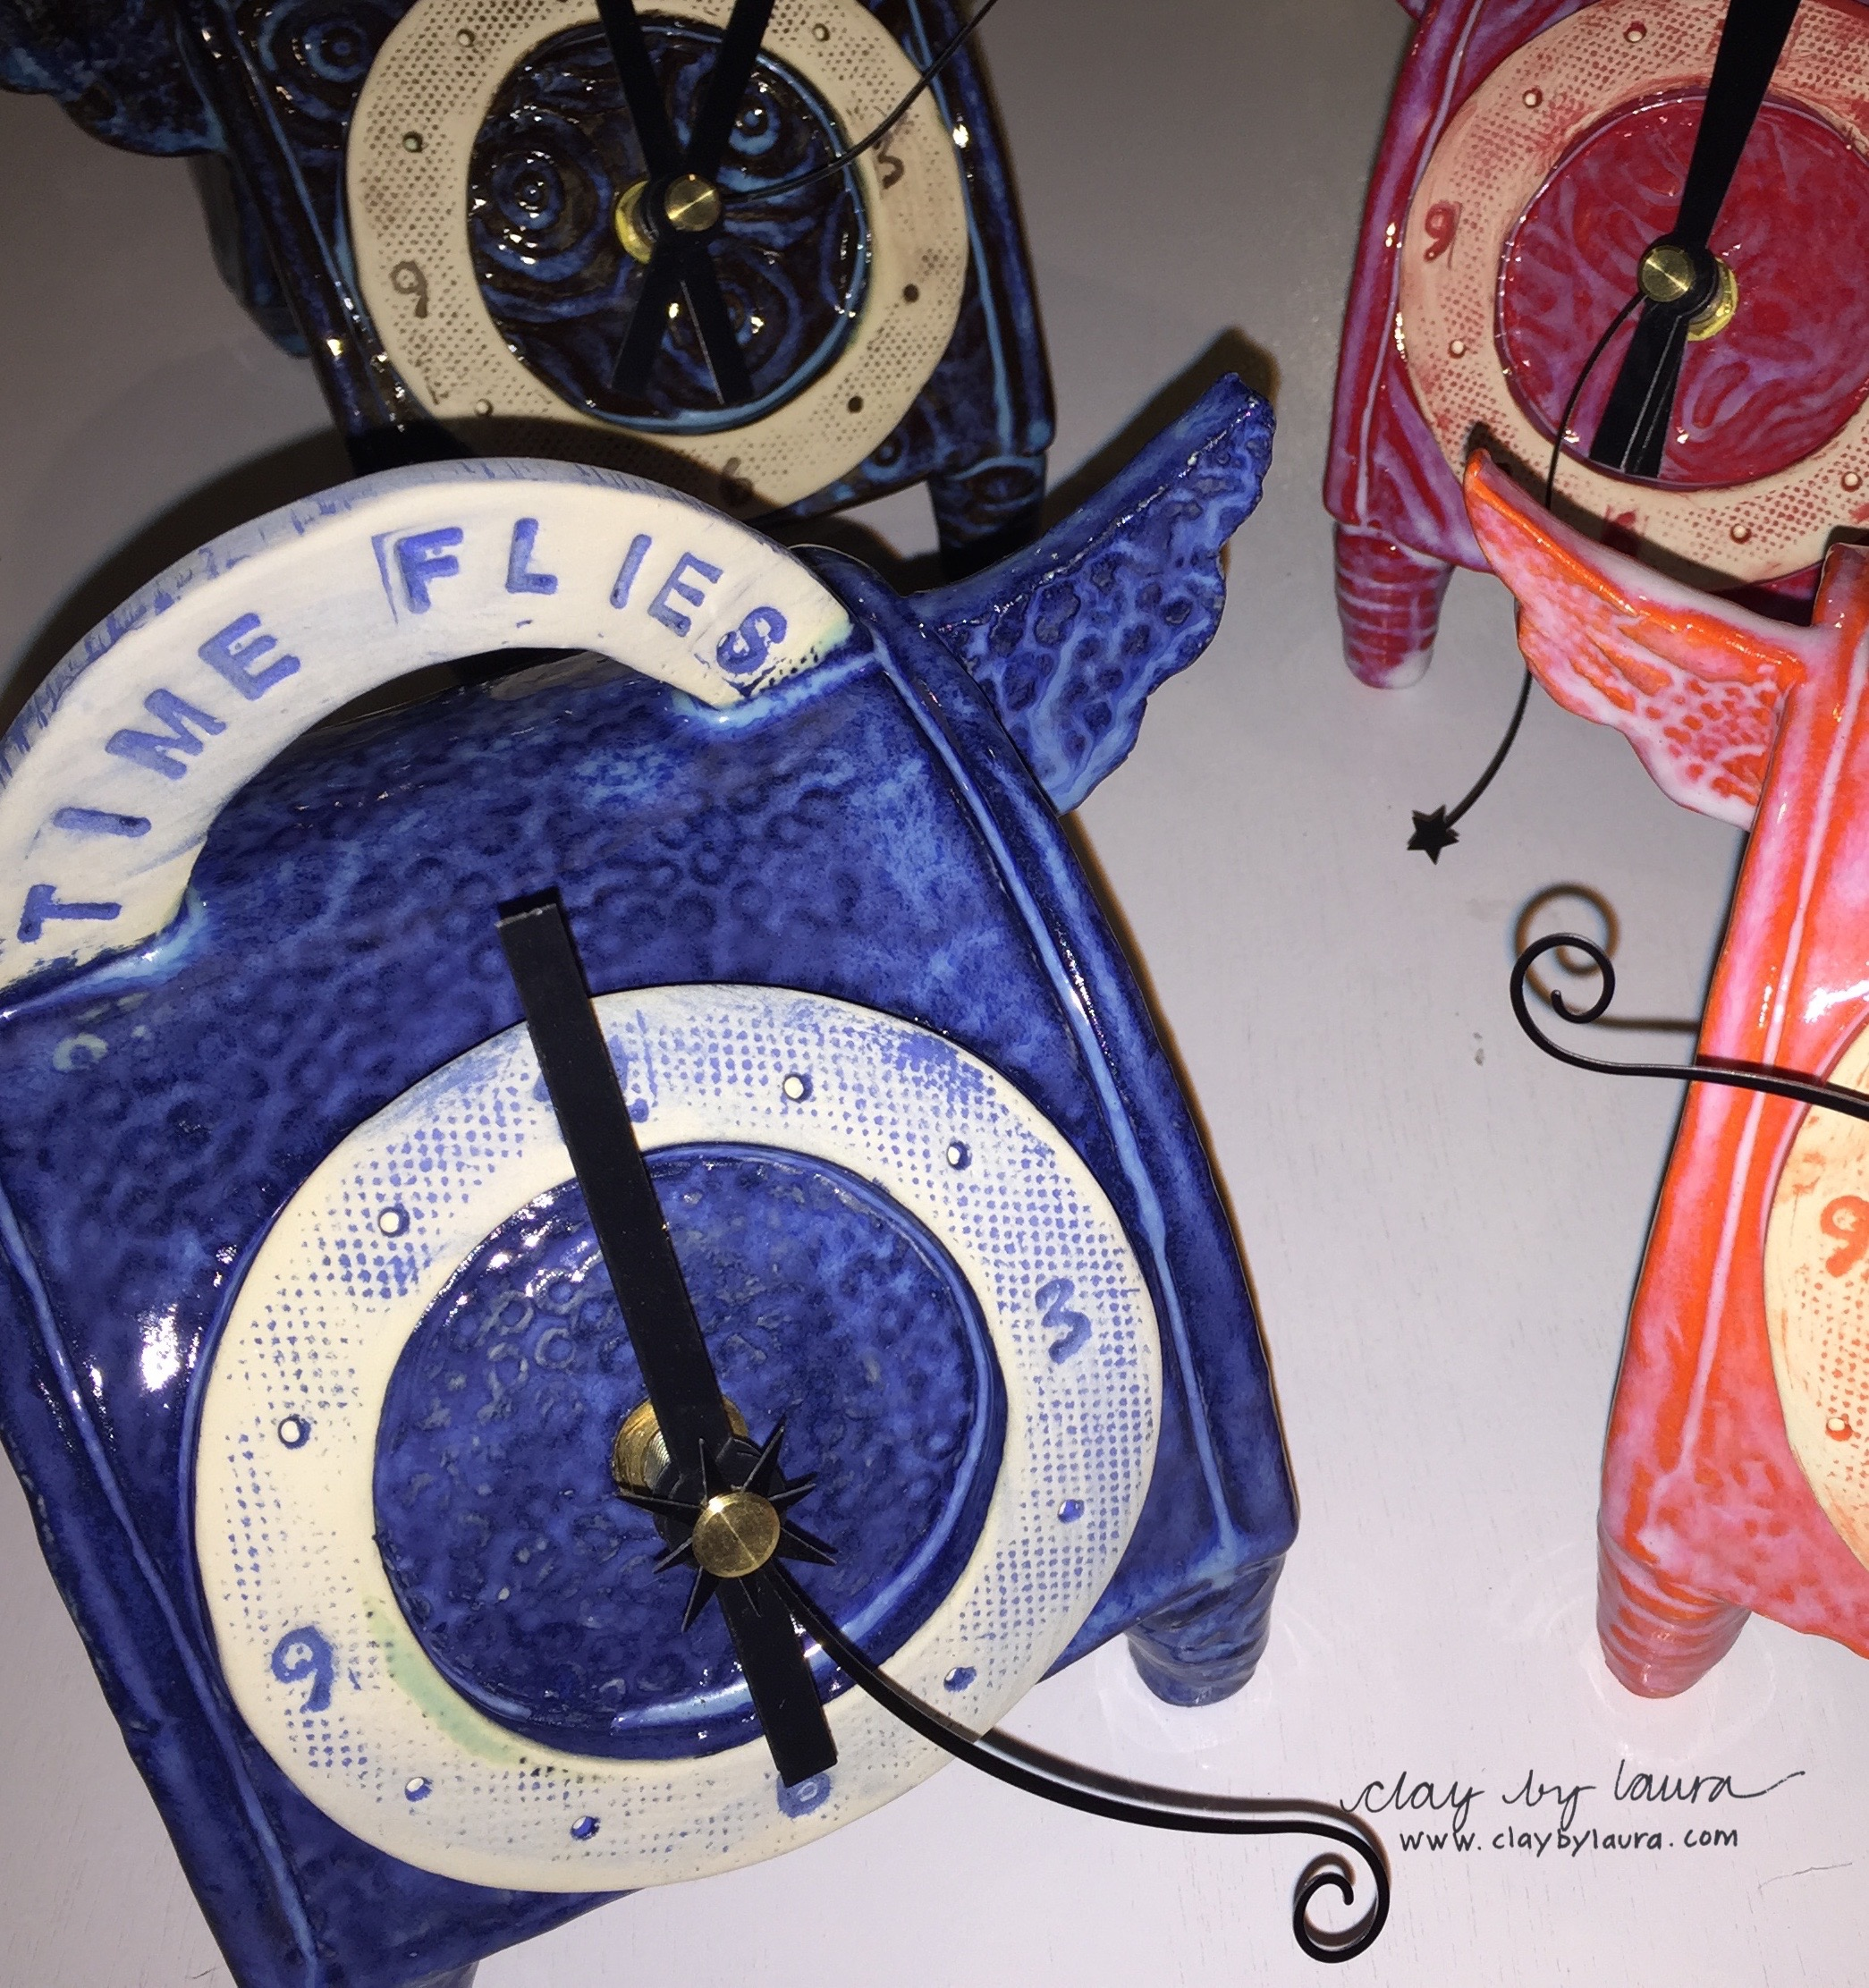 My angel-inspired clock is a new direction for me. I like the contrast of the glazed and unglazed surface areas!